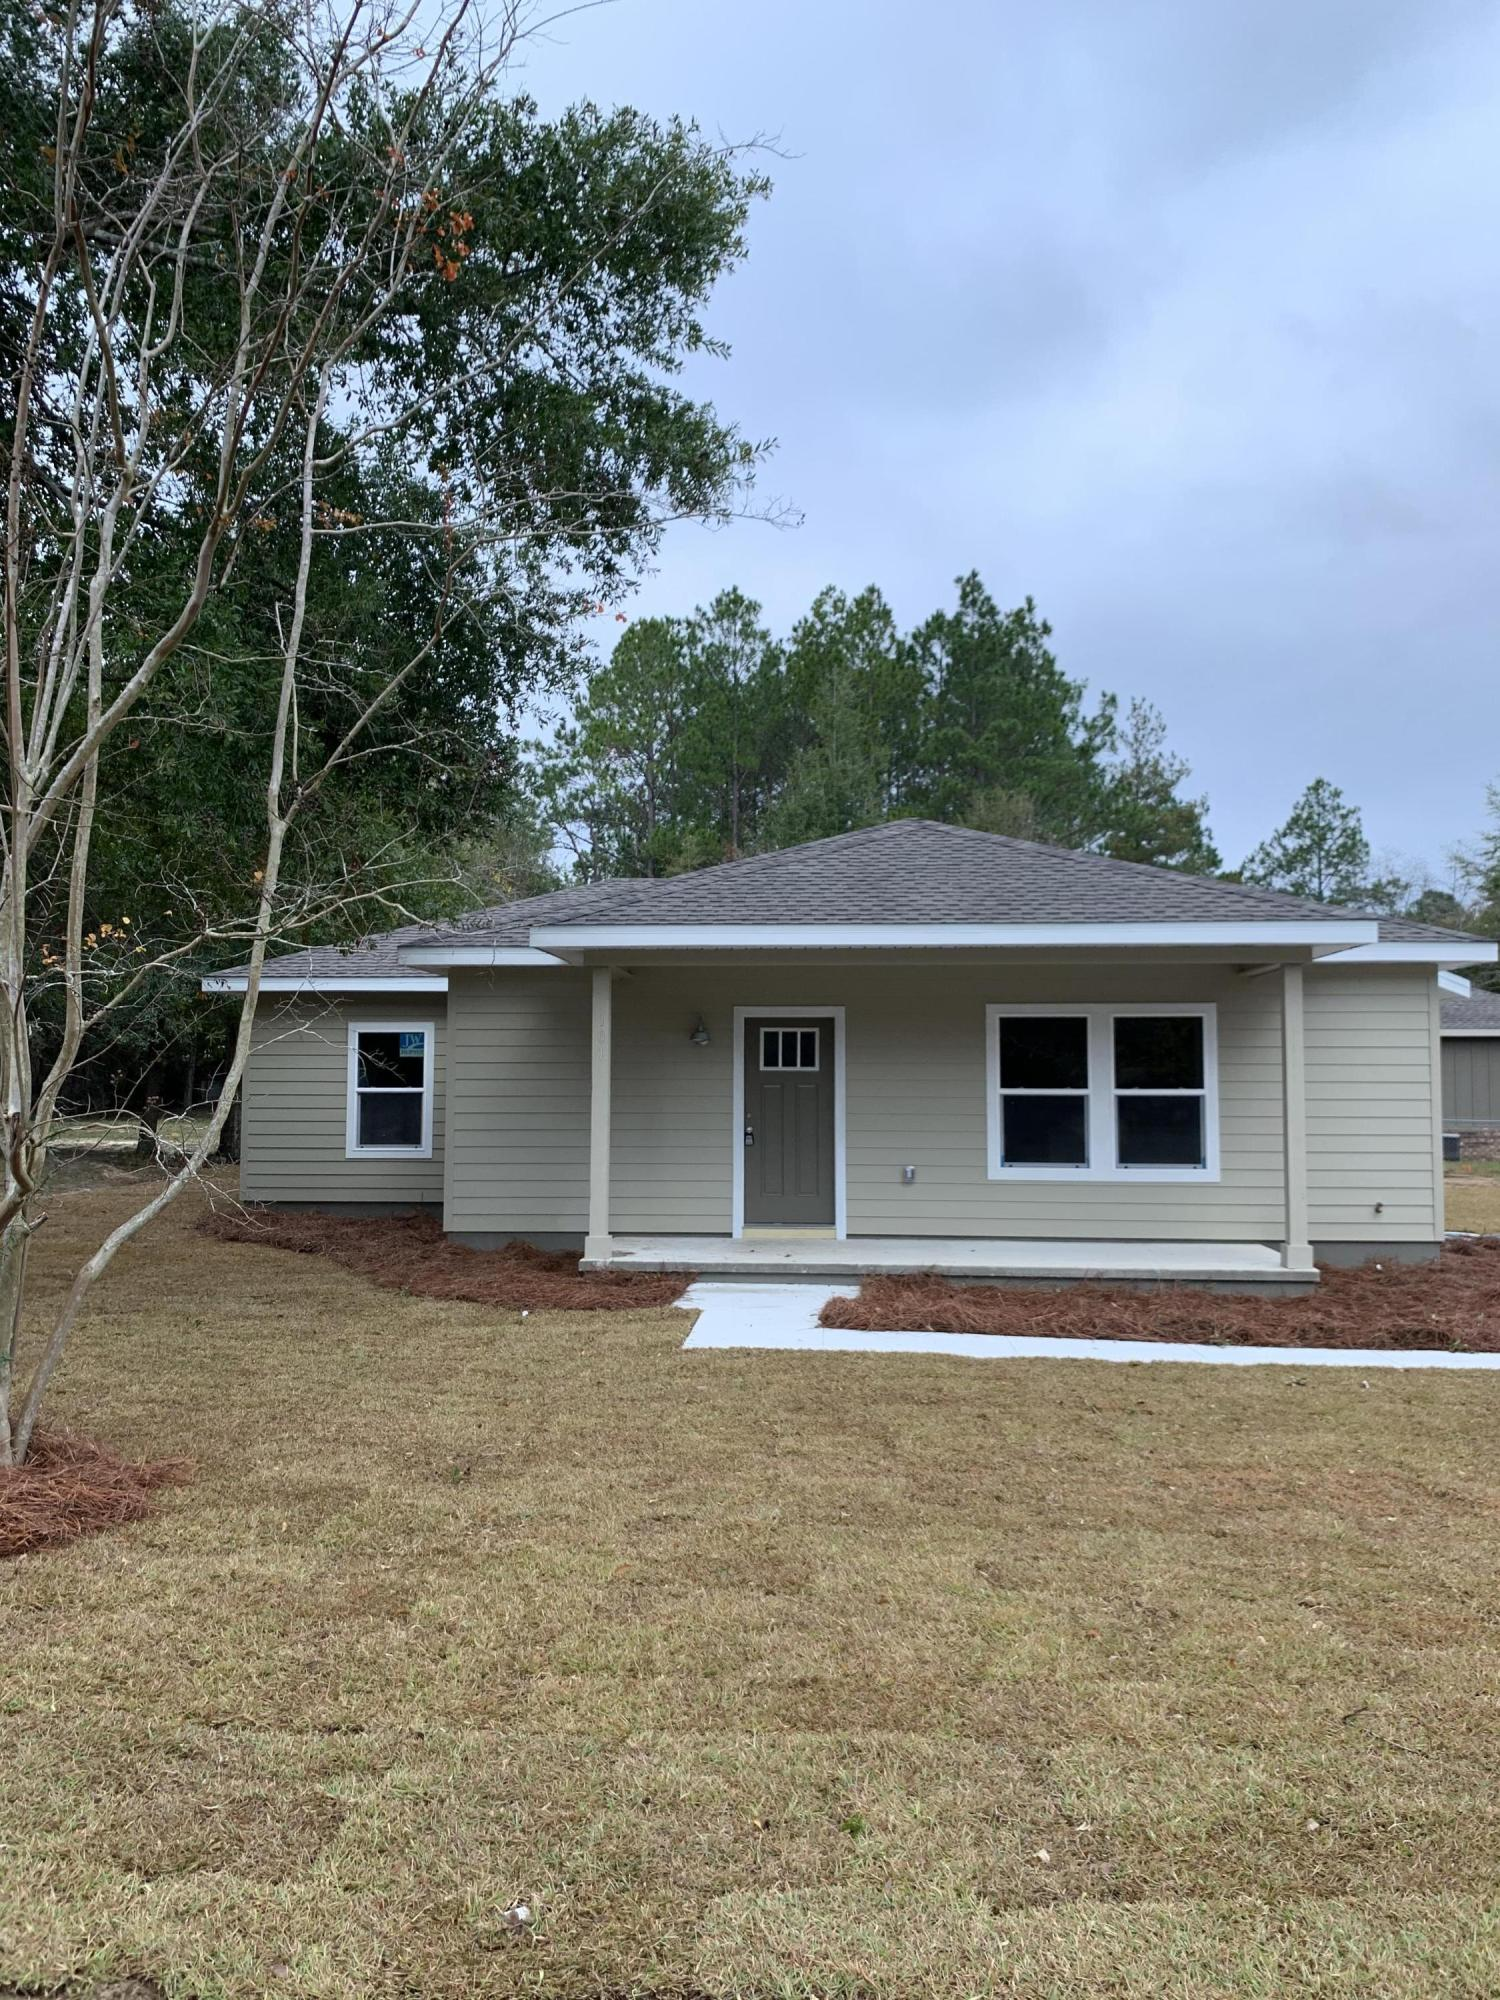 Construction is now complete on this BRAND NEW HOME! This 3 bedroom 2 bath home has an open floor plan featuring stainless steel appliances, luxury vinyl flooring, recessed lighting, oversized laundry room, large master walk-in closet, double vanity in master bath and foam insulation in the attic.  The DeFuniak Springs Country Club, schools and parks are just minutes away.